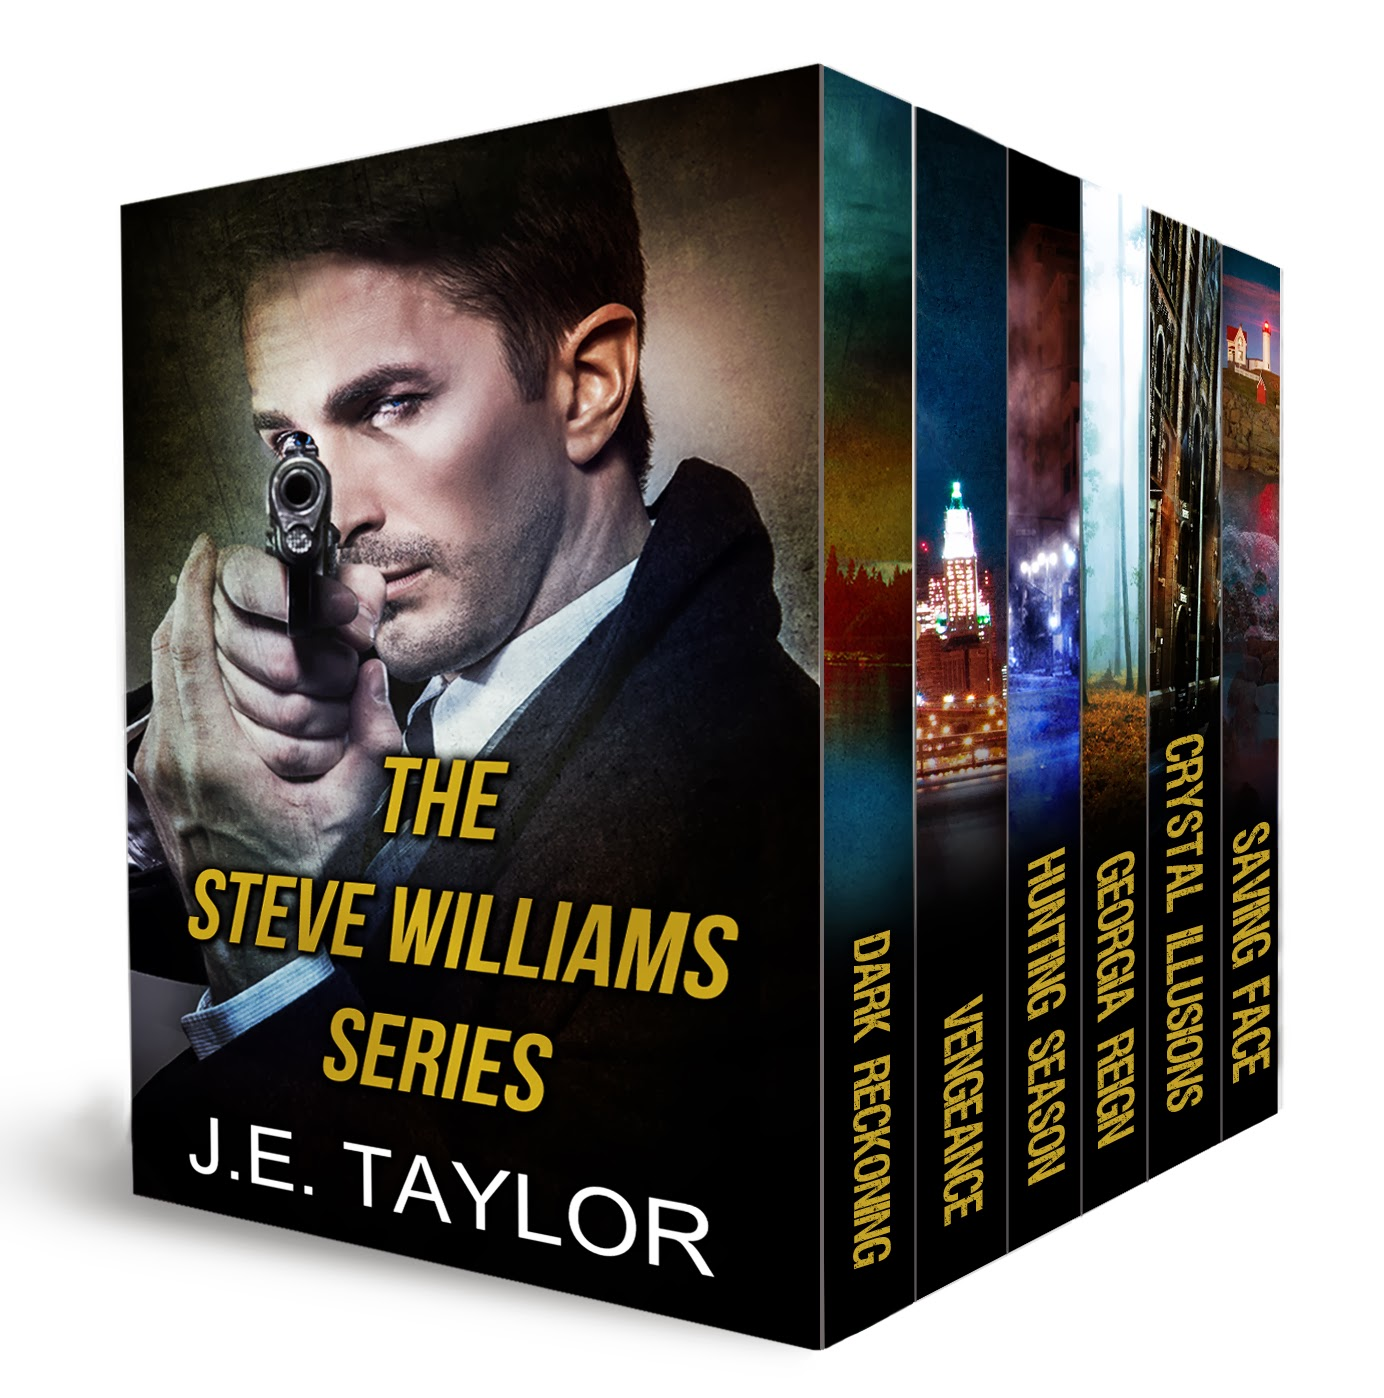 Steve Williams Series Boxed Set